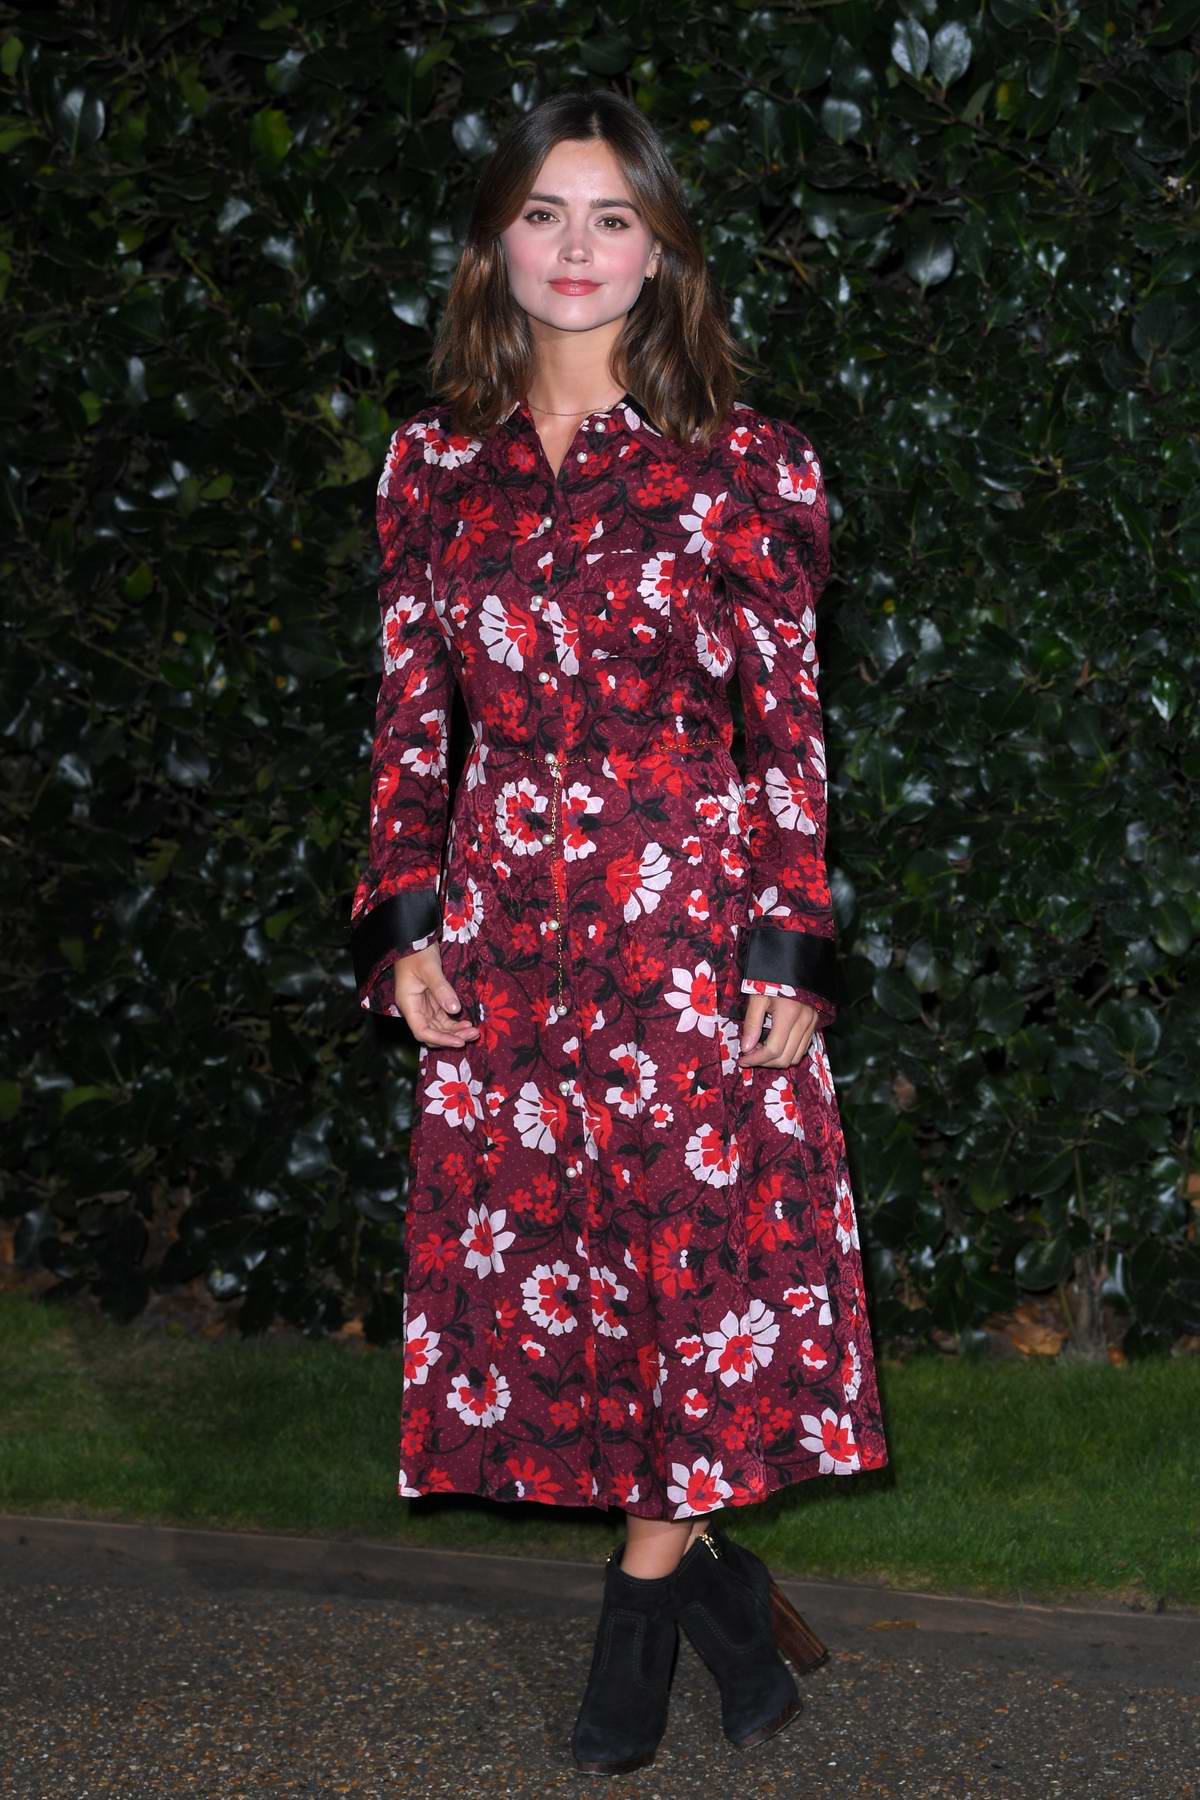 Jenna Coleman at Victoria TV show photocall and Q&A at Kensington Palace in London